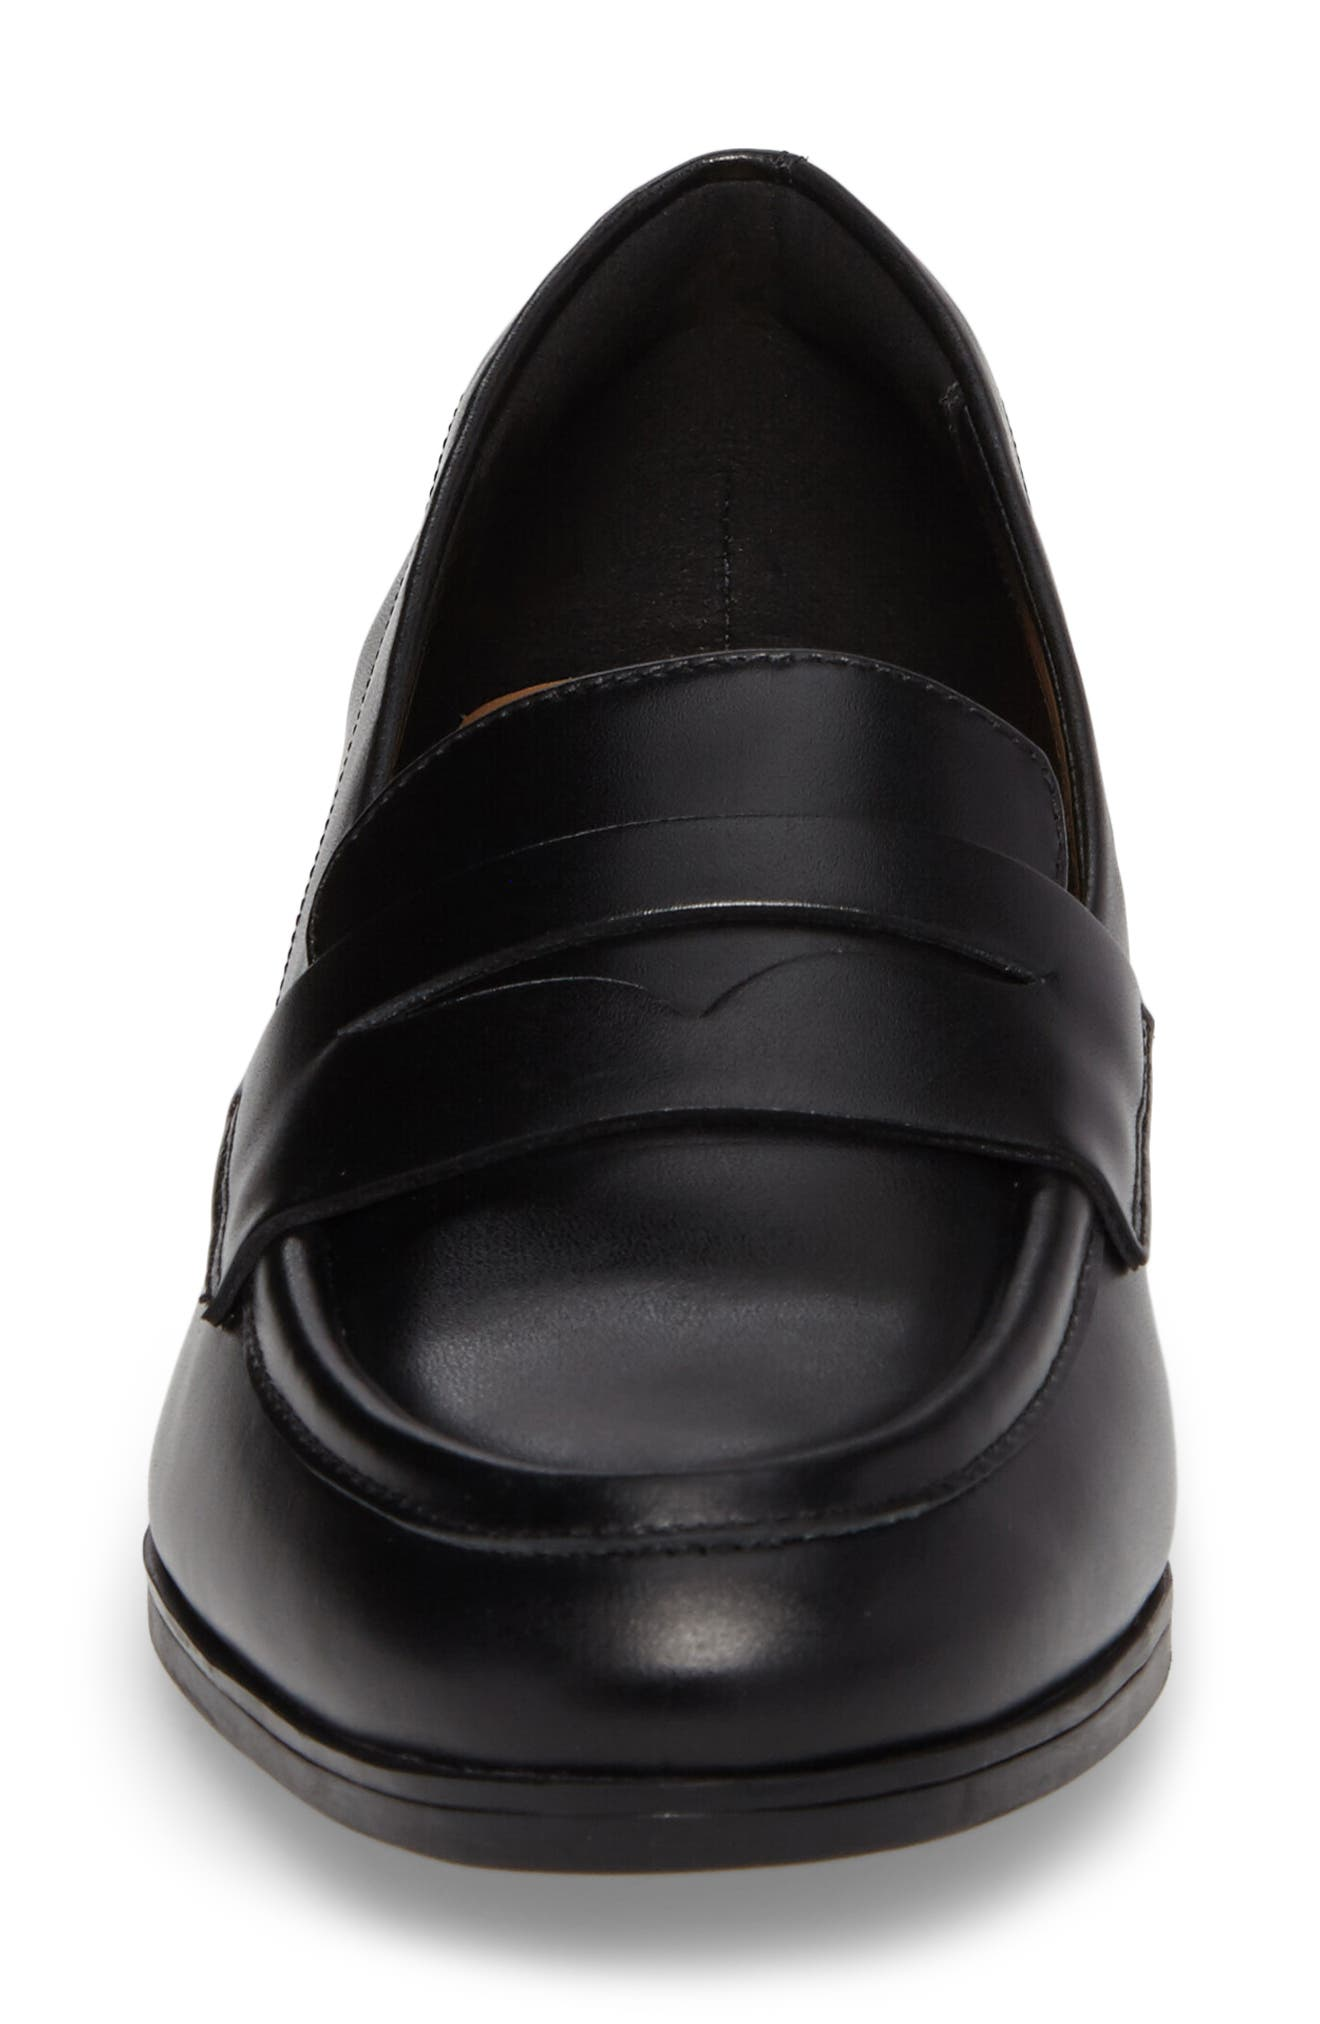 Tilmont Zoe Loafer,                             Alternate thumbnail 4, color,                             Black Leather